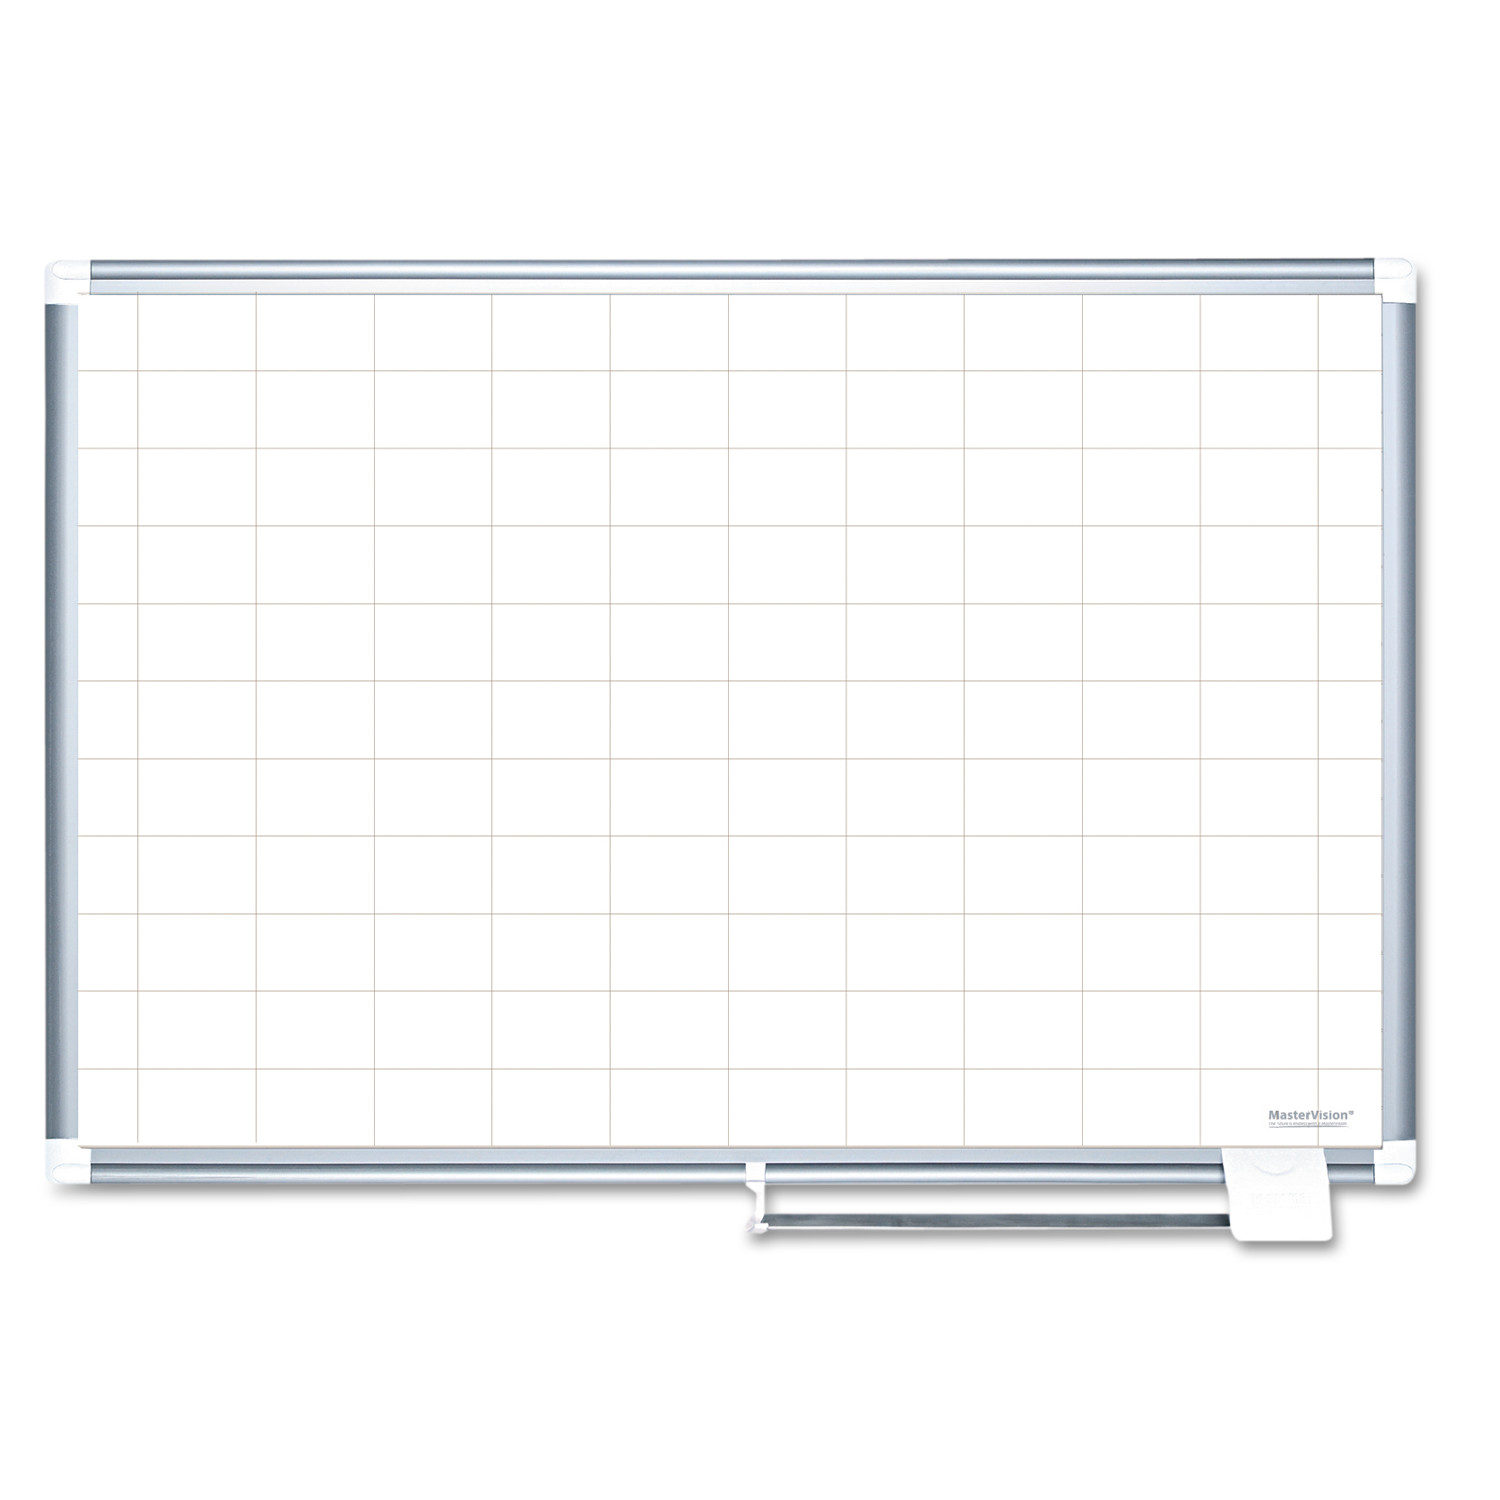 MasterVision Grid Planning Board, 2x3 Grid, 72x48, White Silver by BI-SILQUE VISUAL COMMUNICATION PRODUCTS INC